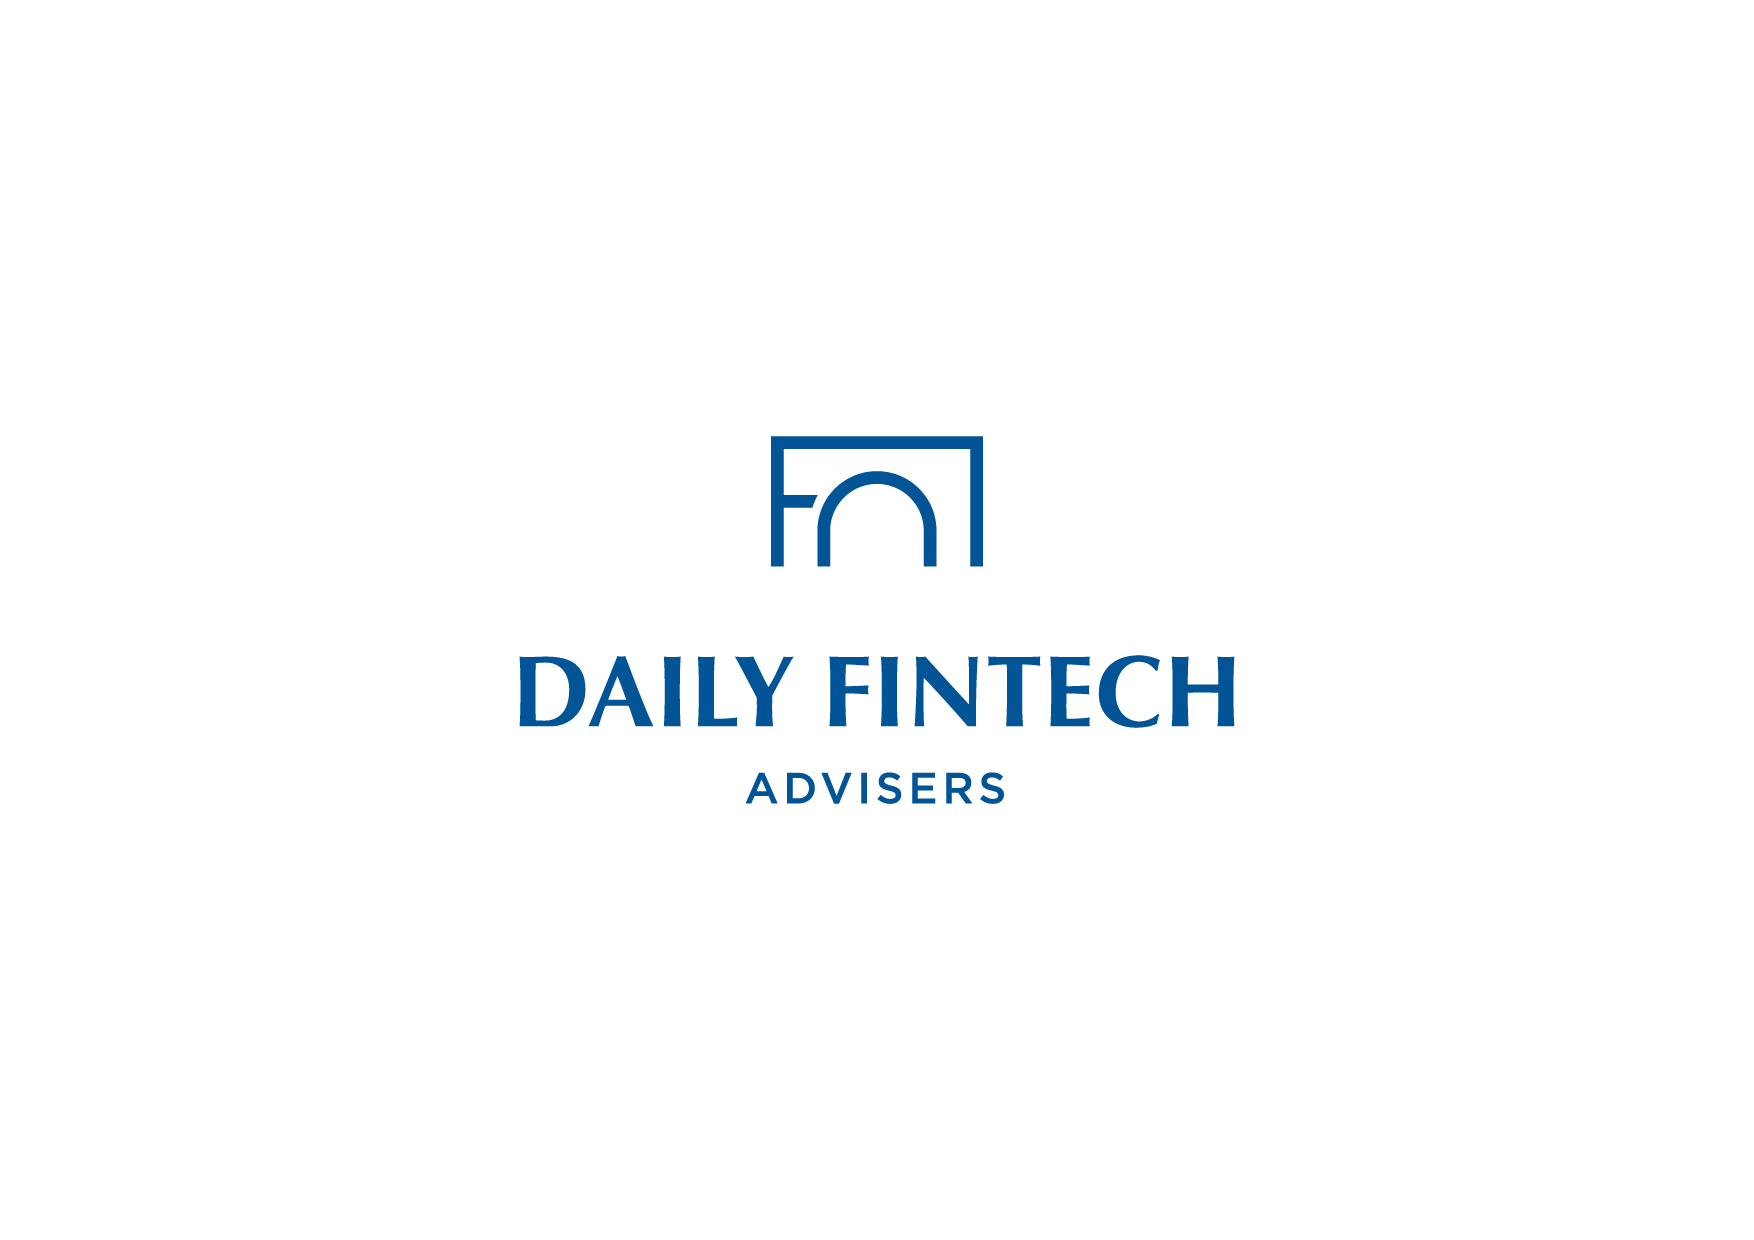 Daily Fintech